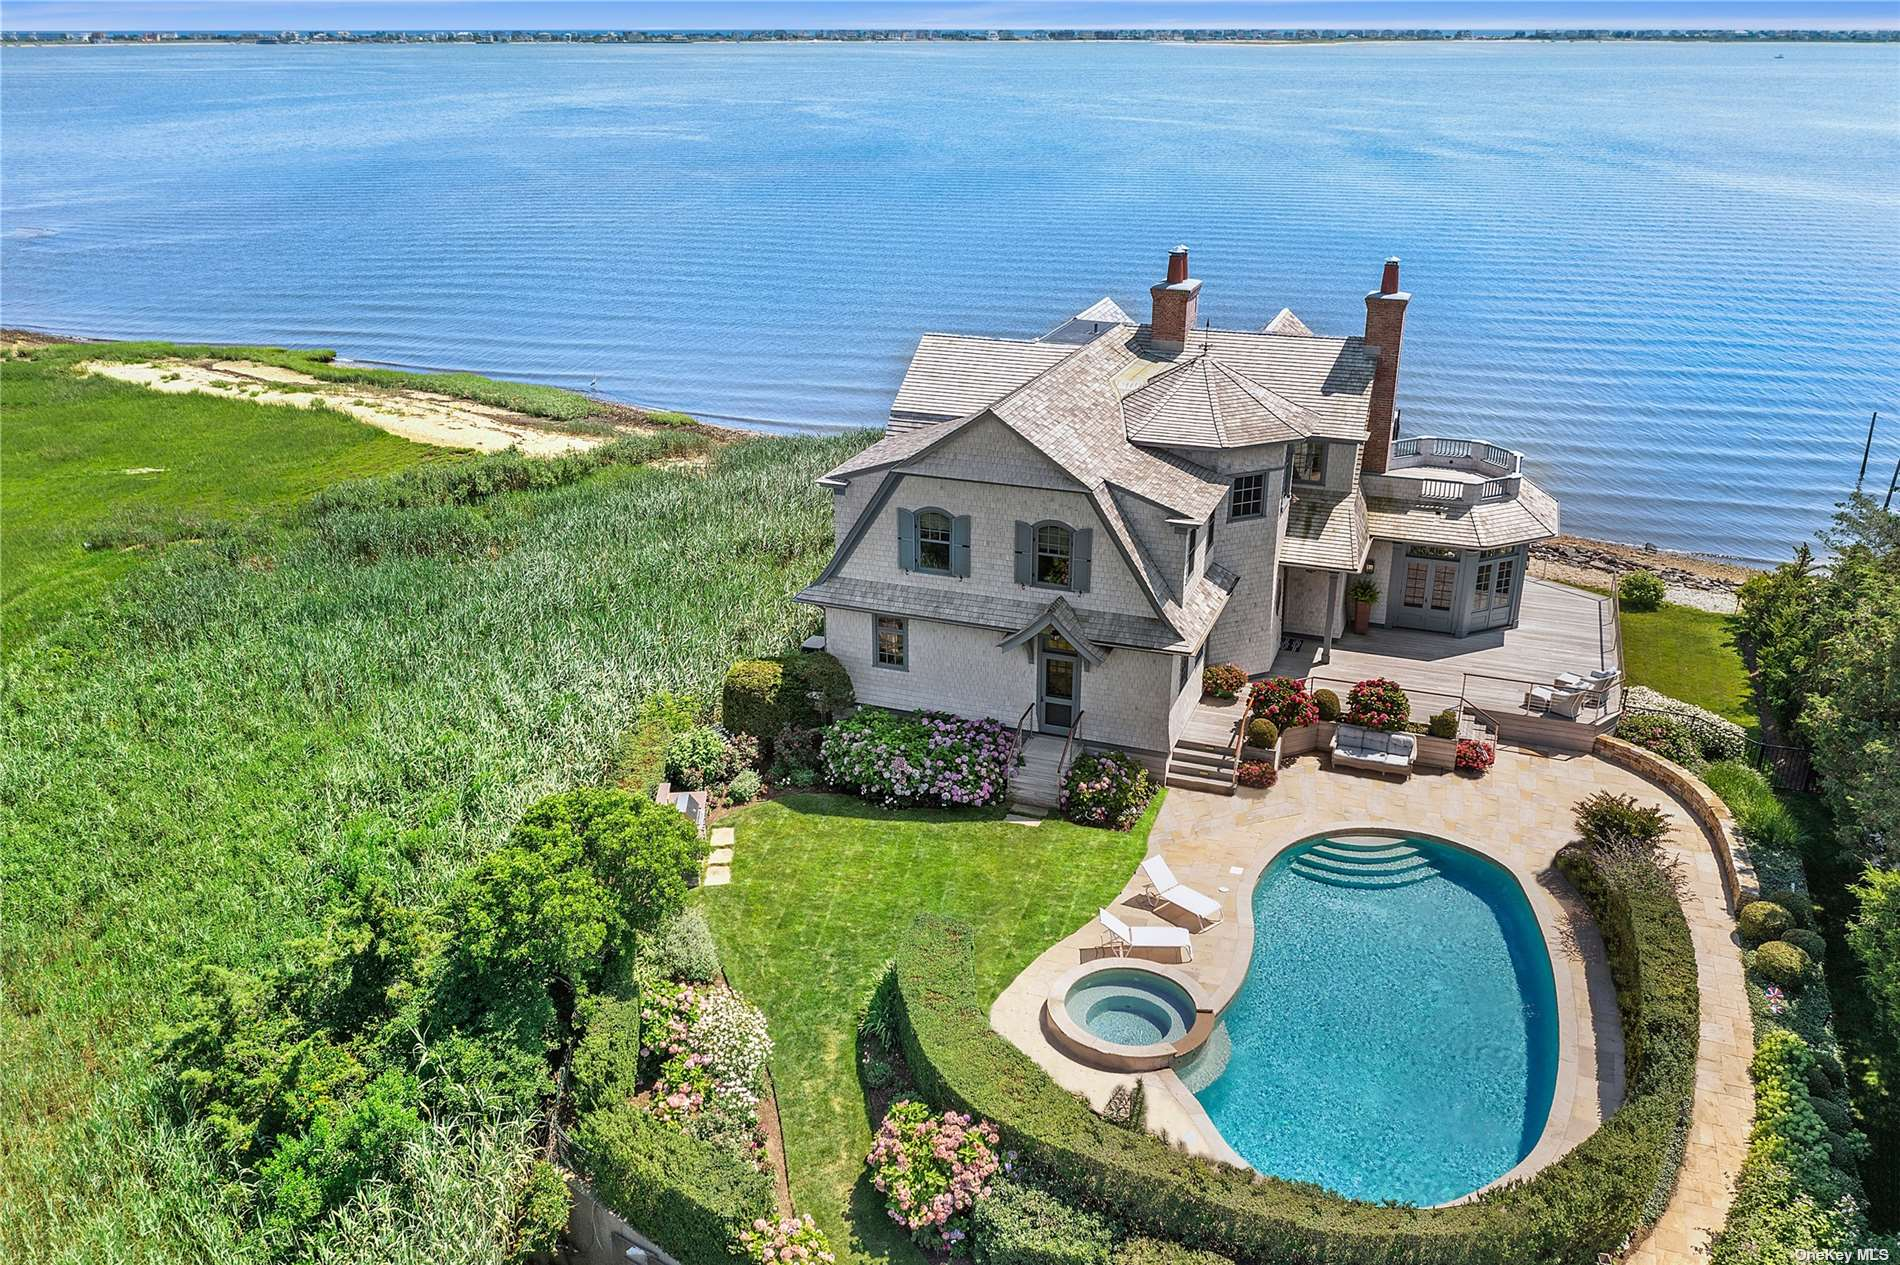 First Offering of This Bayfront Beauty!  Custom designed by renowned architect Stuart Disston and constructed by Sea Level in 2011, this Nantucket style shingled home on Moriches Bay is a paragon of exceptional craftsmanship and the finest attention to detail.  The deep flag lot setting and adjacent protected land afford privacy while the open bay offers a panorama of water views across to Dune Road.  Expansive mahogany decking, heated gunite pool and spa, outdoor kitchen, and private dock - having it all never looked so good!  *Exclusions: Dining Room Chandelier, Living Room Drapes, Primary Bedroom Drapes